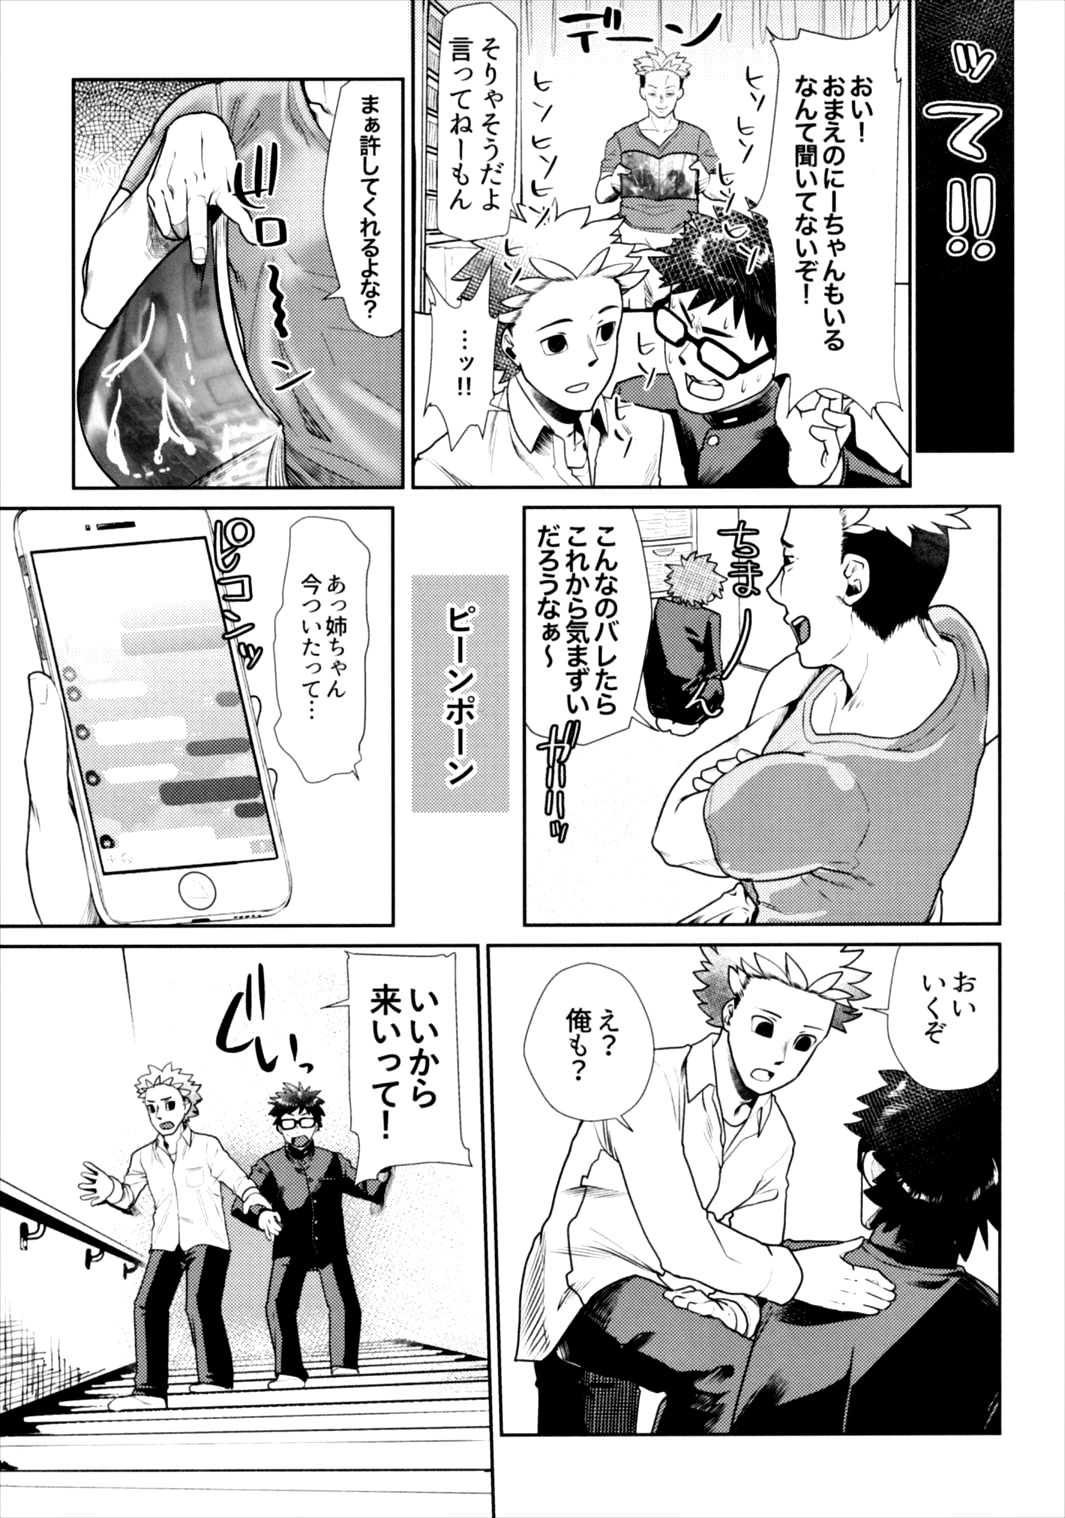 (Cinderella Stage 5step) [i'm Fragile (HisayakiQ)] Onee-chan to Issho (THE IDOLM@STER CINDERELLA GIRLS) page 7